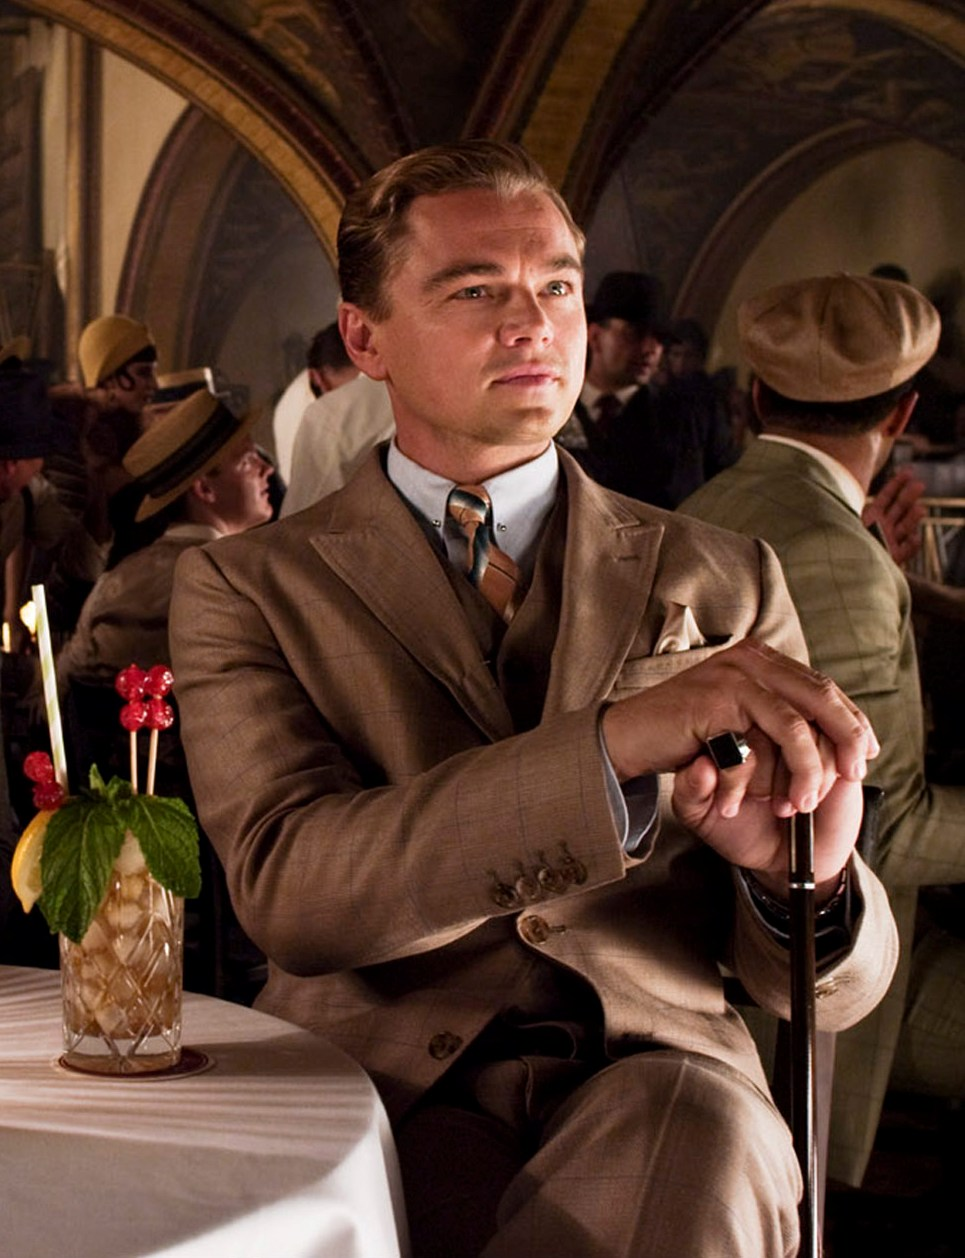 Great Gatsby Men S Fashion Brooks Brothers Clothing: 15 Quotes About Love, Life And Ambition From 'The Great